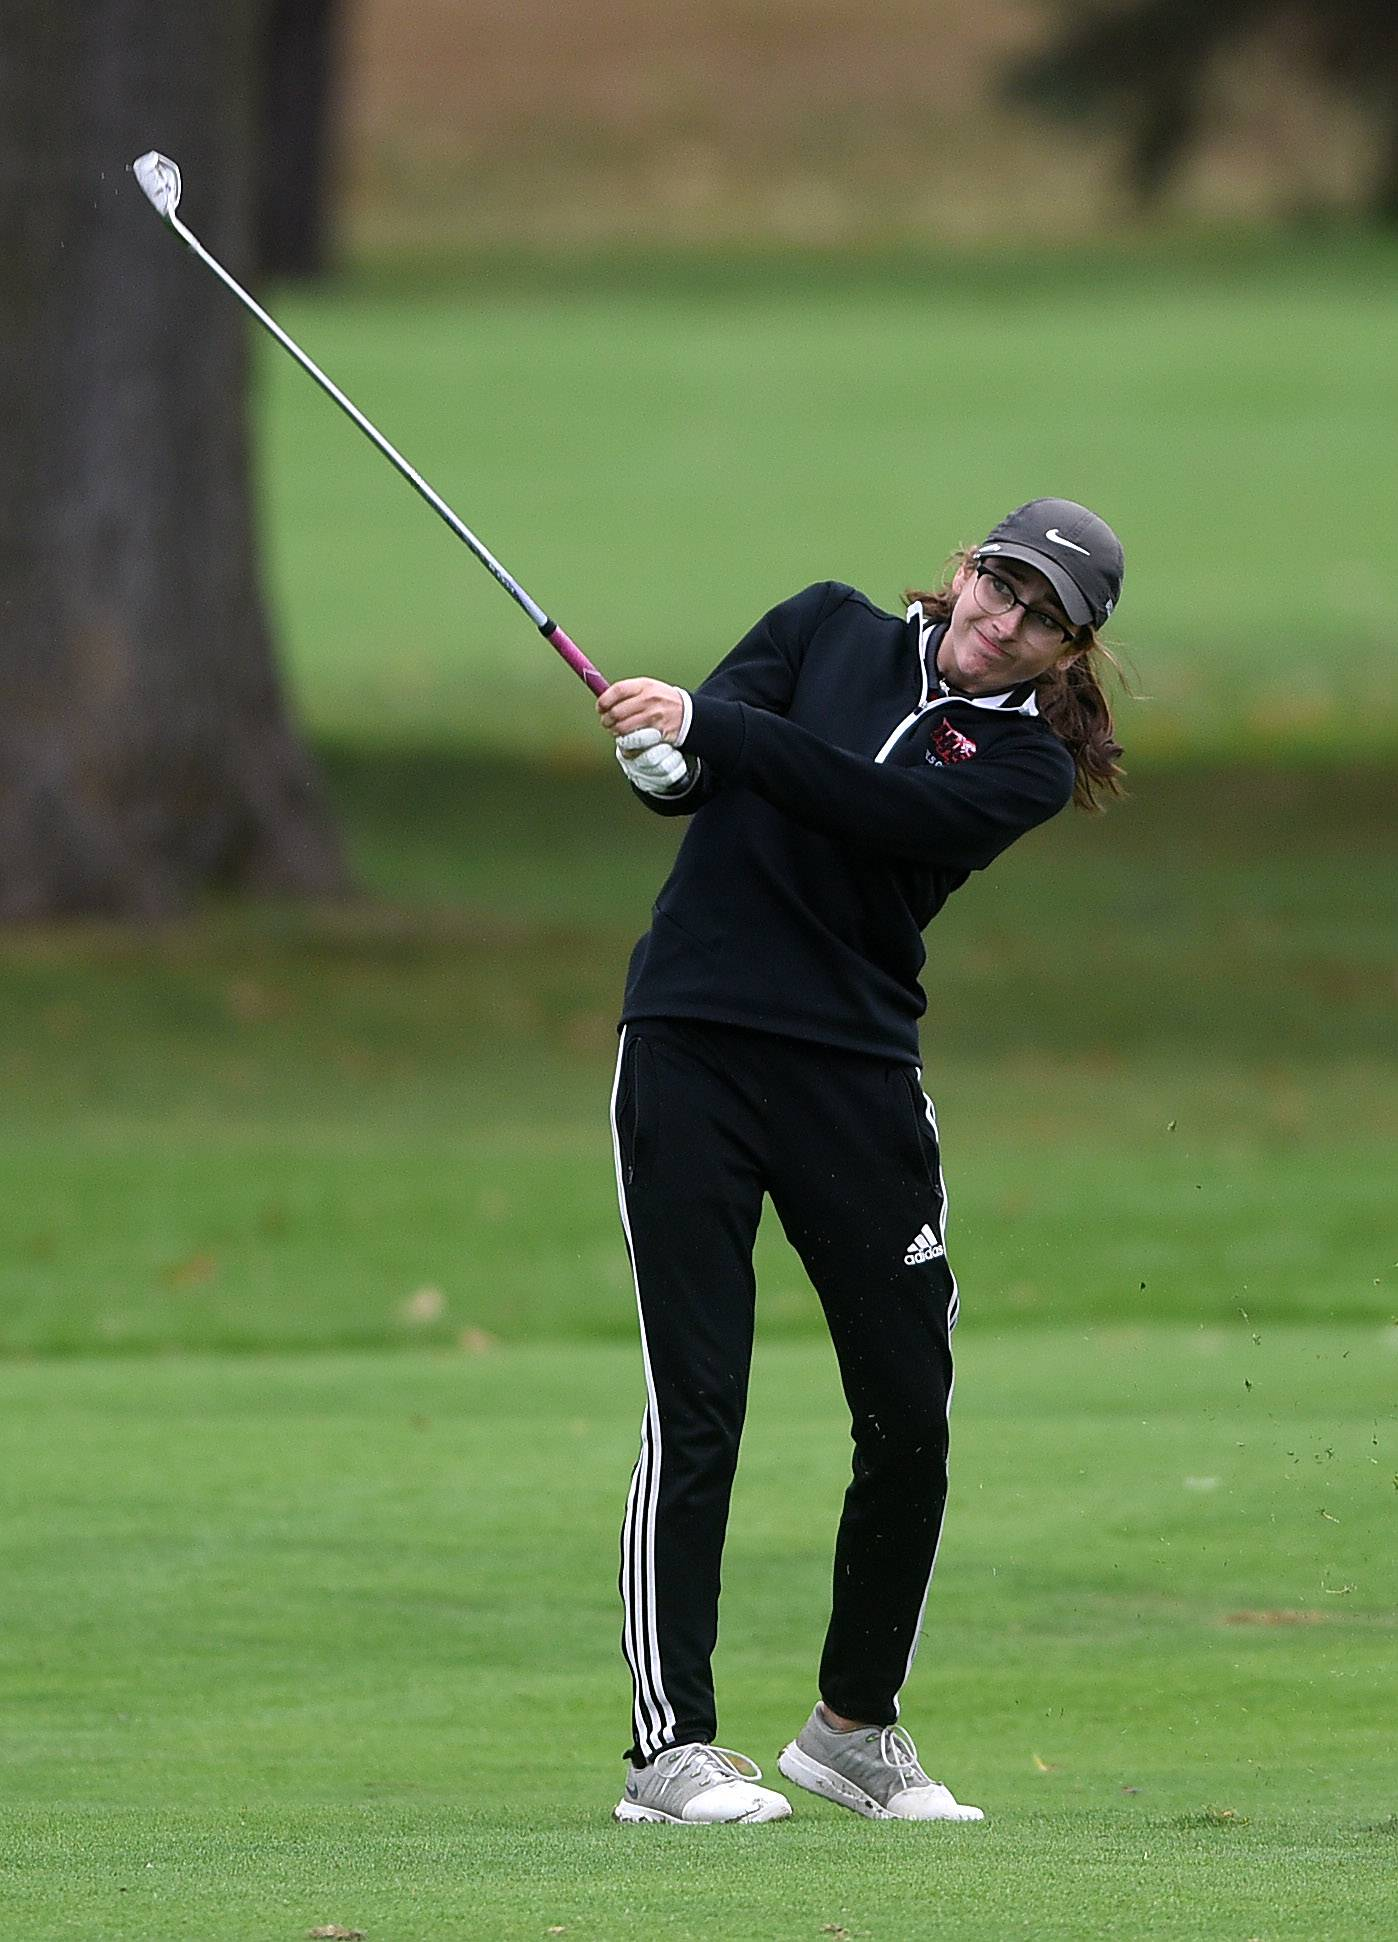 Huntley's Katie Weidner hits from the first fairway during the Burlington Central girls golf regional at Sycamore Golf Club Wednesday.